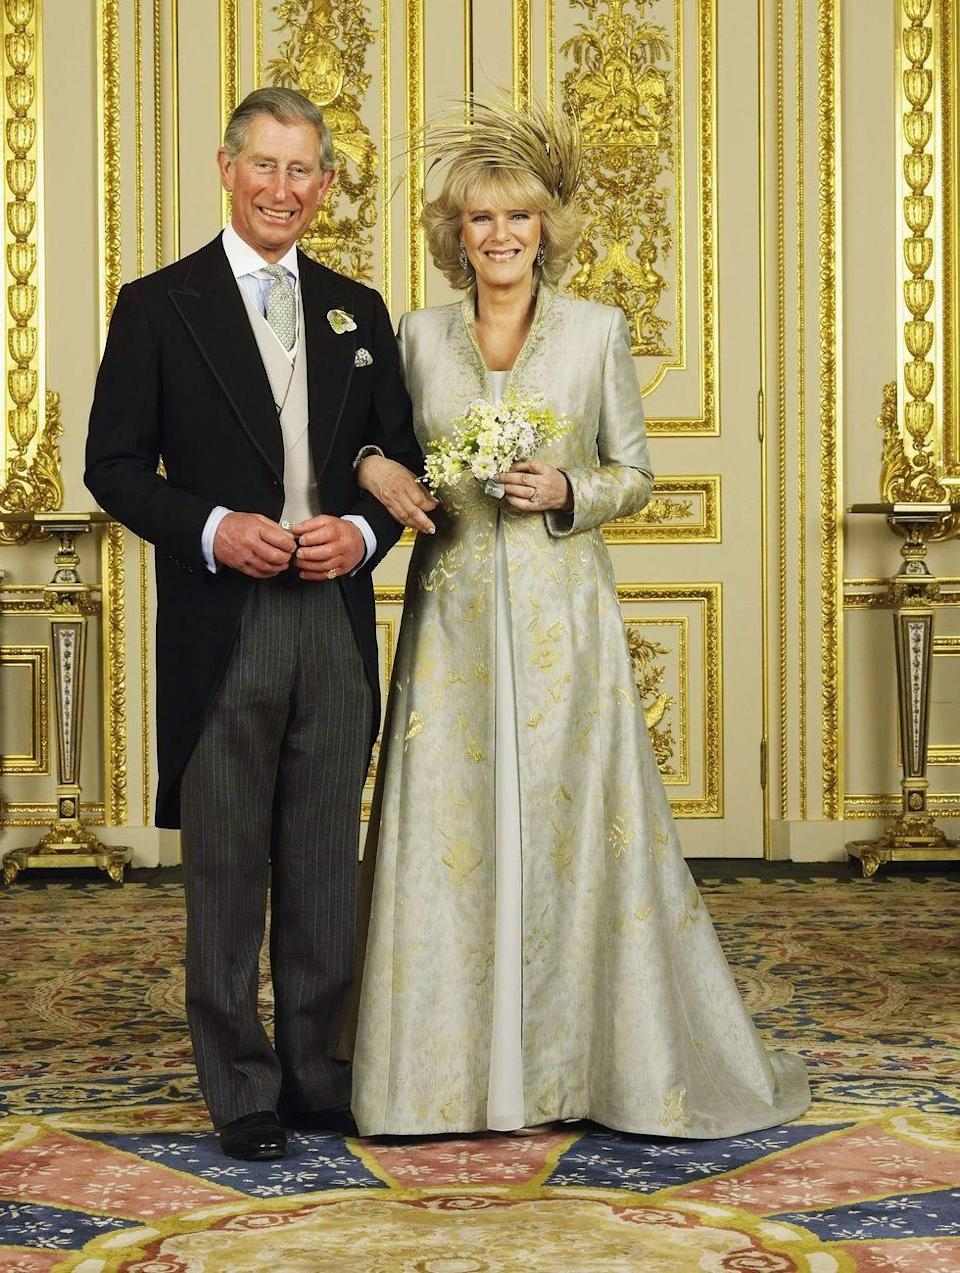 """<p>With Prince Charles on their wedding day. The couple were legally married in <a href=""""https://www.townandcountrymag.com/society/tradition/g26236519/best-royal-weddings-around-the-world"""" rel=""""nofollow noopener"""" target=""""_blank"""" data-ylk=""""slk:a small civil ceremony"""" class=""""link rapid-noclick-resp"""">a small civil ceremony</a> at the Windsor Guildhall (presumably to avoid controversy over the heir to the throne marrying a divorcee in a religious ceremony) followed by a marriage blessing at St. George's Chapel and reception <a href=""""https://www.townandcountrymag.com/society/tradition/g15881437/royal-weddings-history-windsor-castle-st-georges-chapel"""" rel=""""nofollow noopener"""" target=""""_blank"""" data-ylk=""""slk:inside Windsor Castle."""" class=""""link rapid-noclick-resp"""">inside Windsor Castle.</a></p>"""